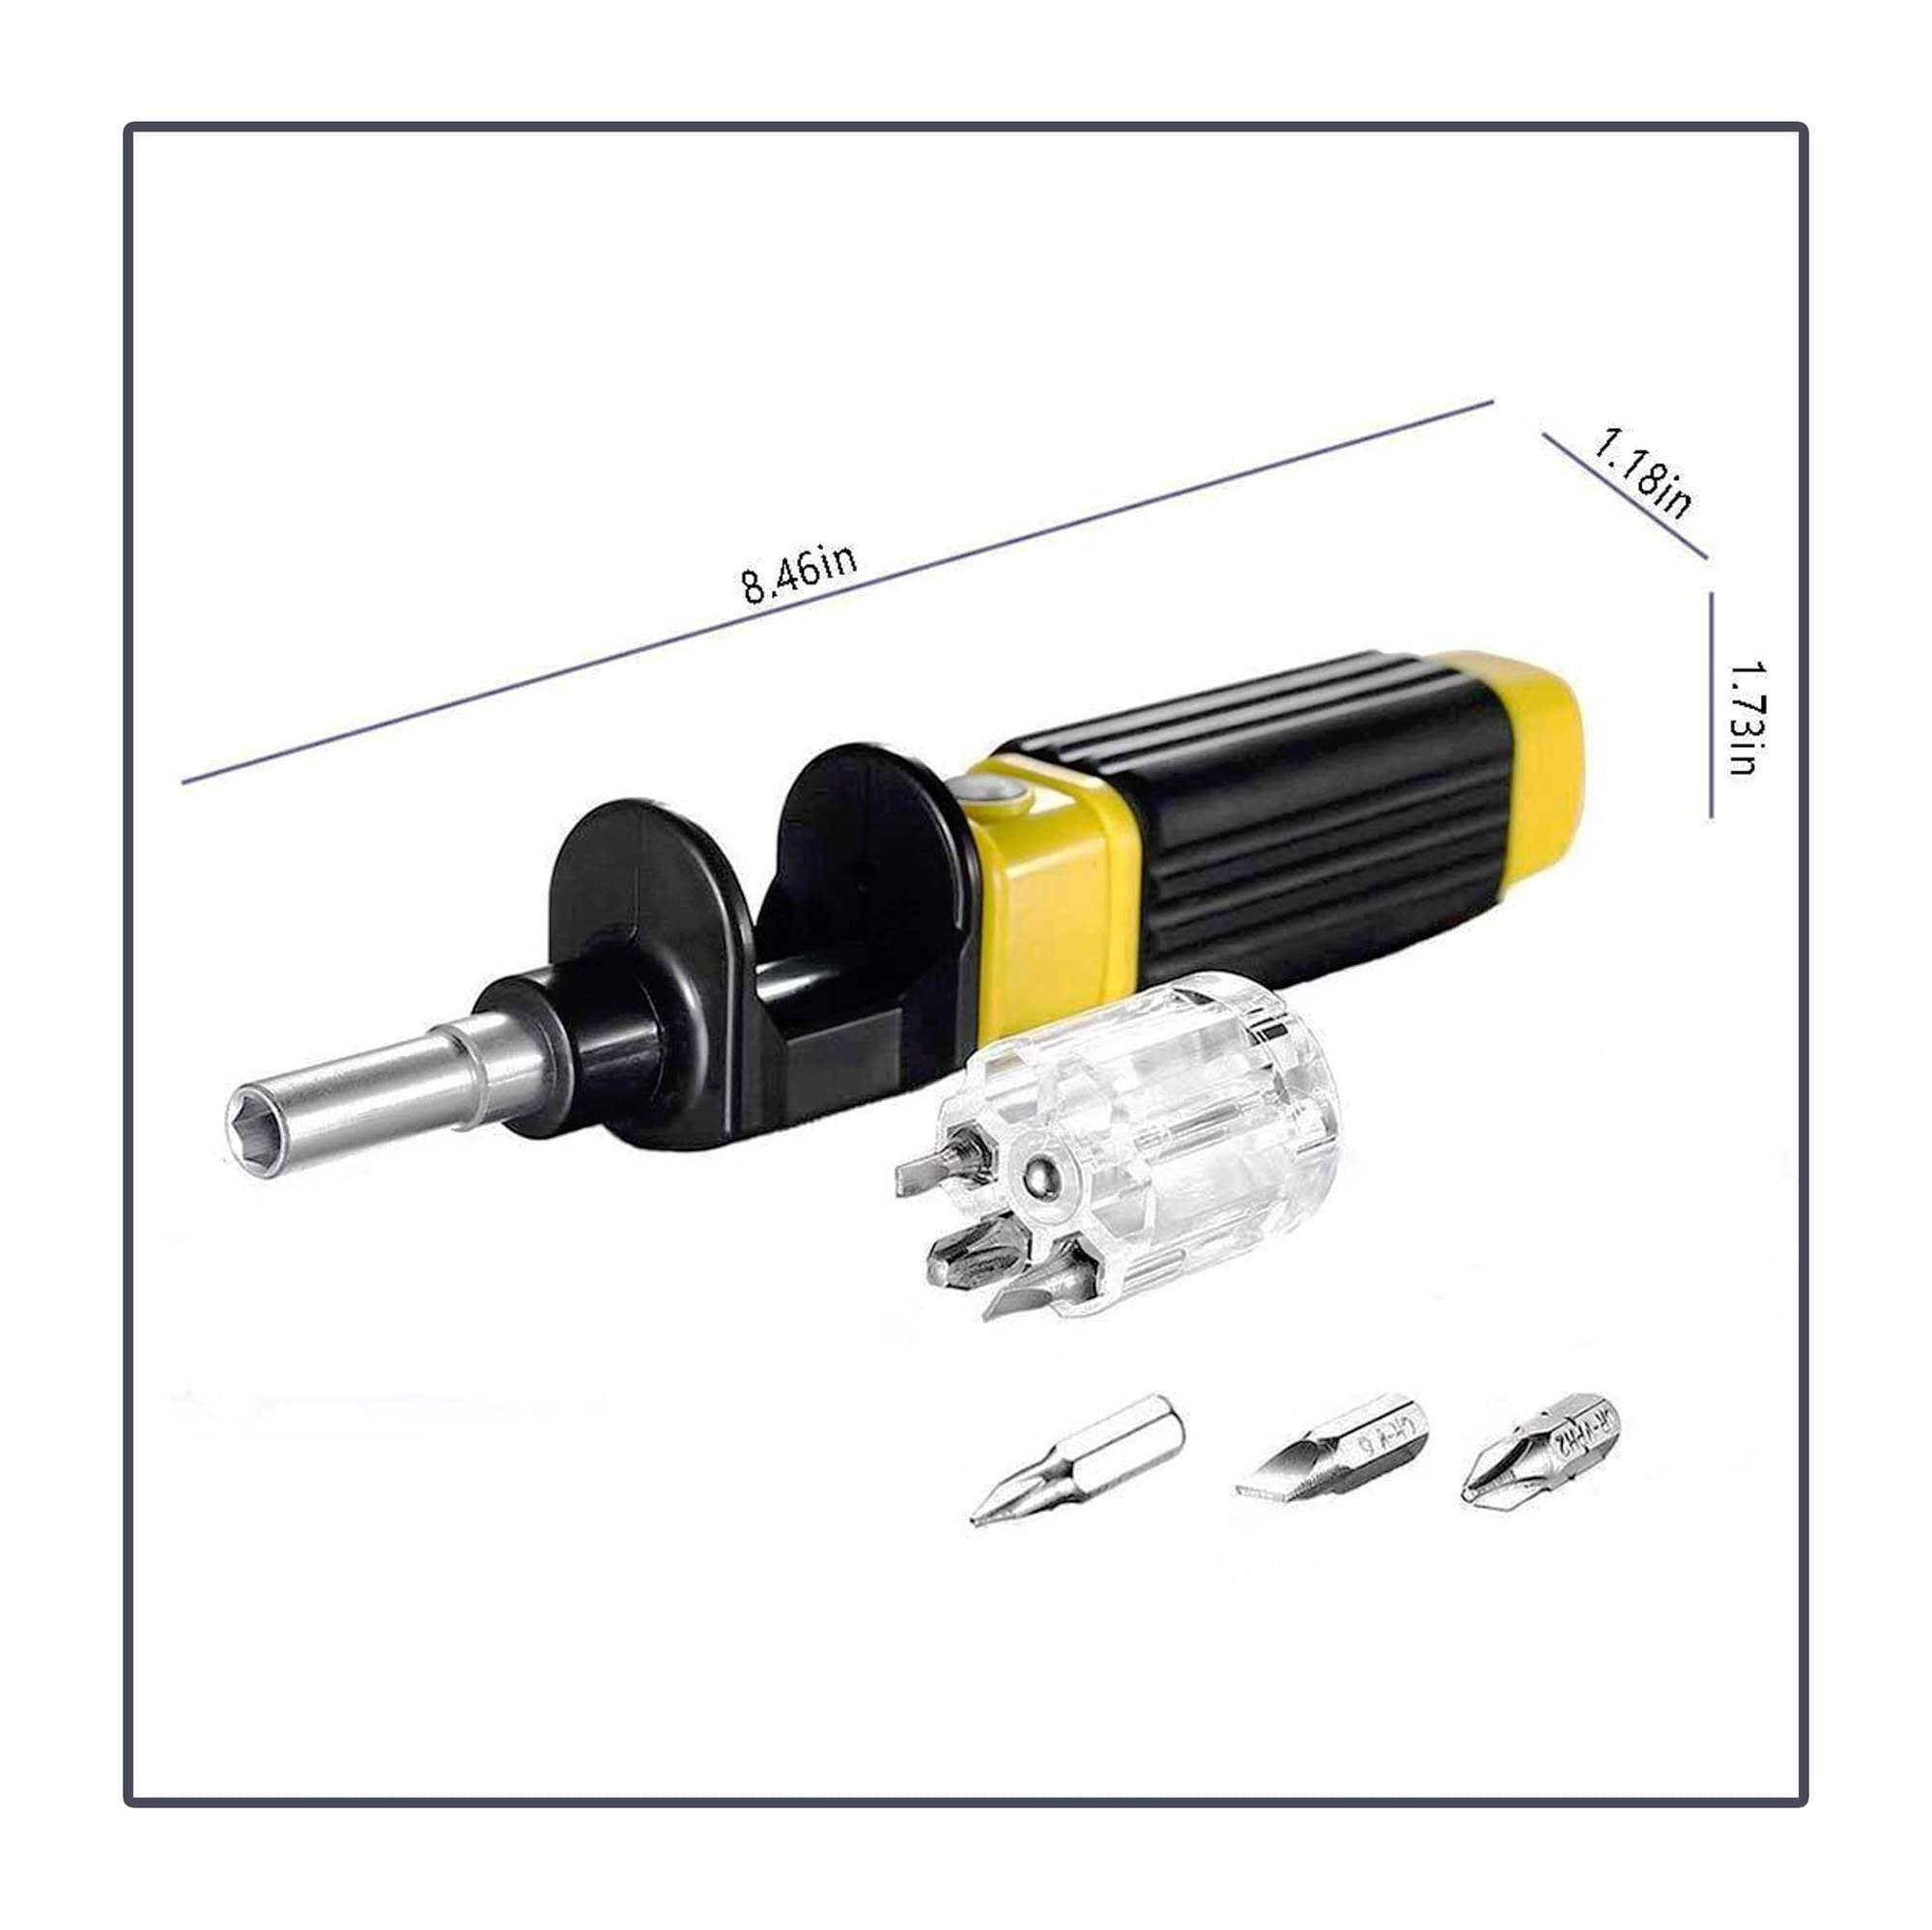 Buy 2 free shipping!!-6 IN 1 MULTIFUNCTIONAL SCREWDRIVER SET